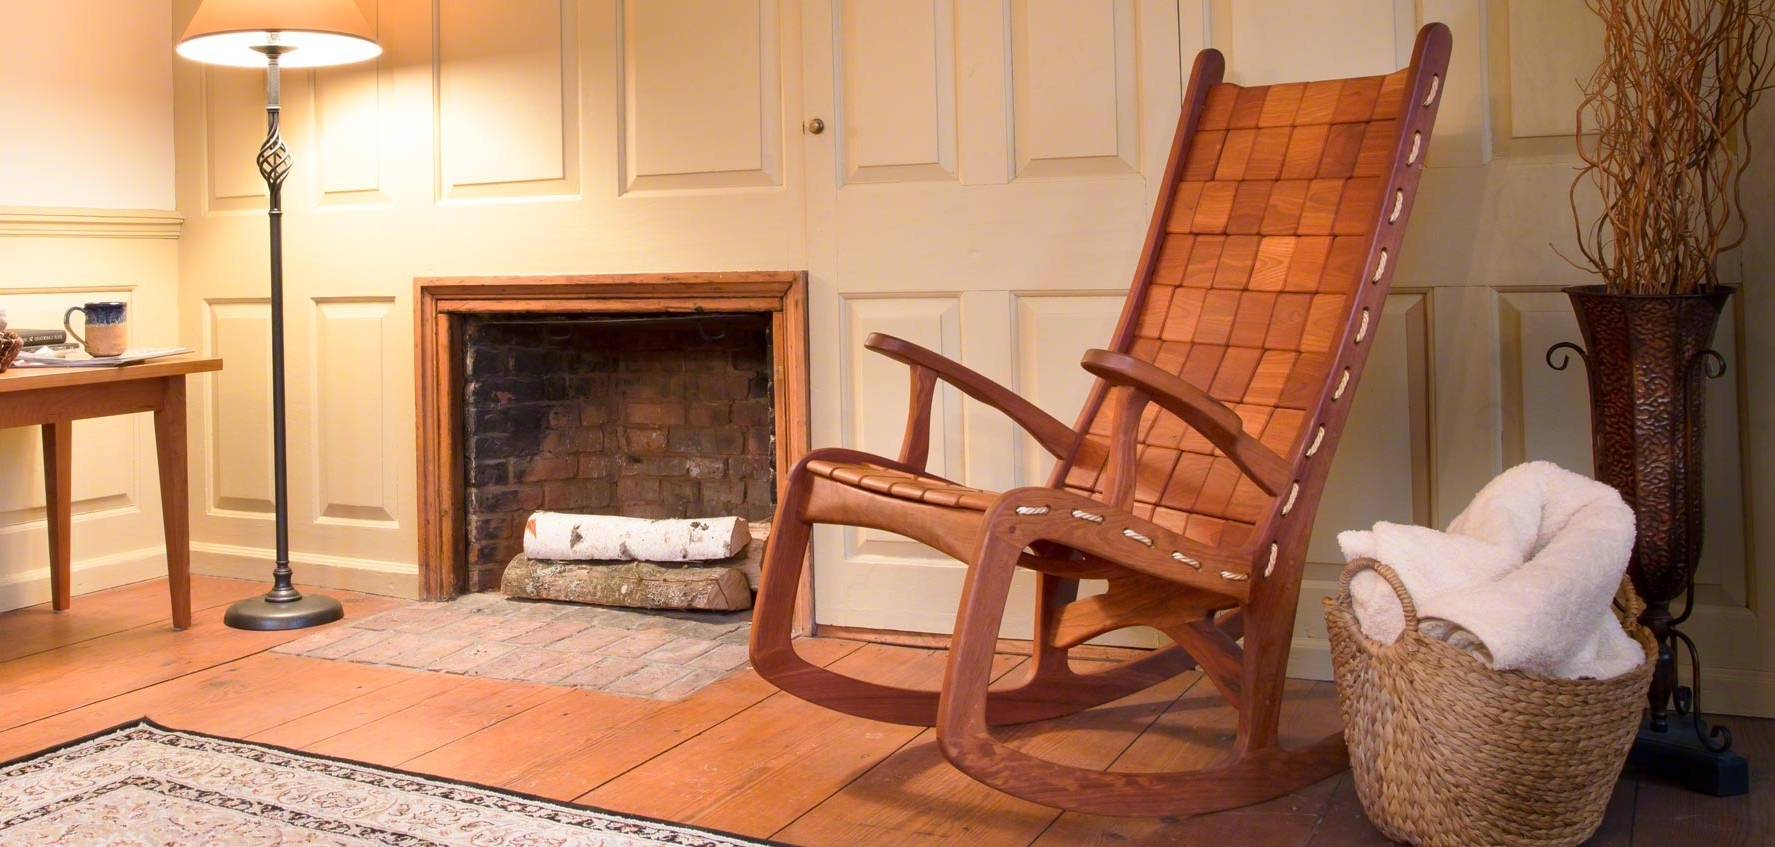 Rocking Chairs For Living Room For Well Known Living Room : Swivel Rocking Chairs For Living Room Paigeandbryancom (View 16 of 20)